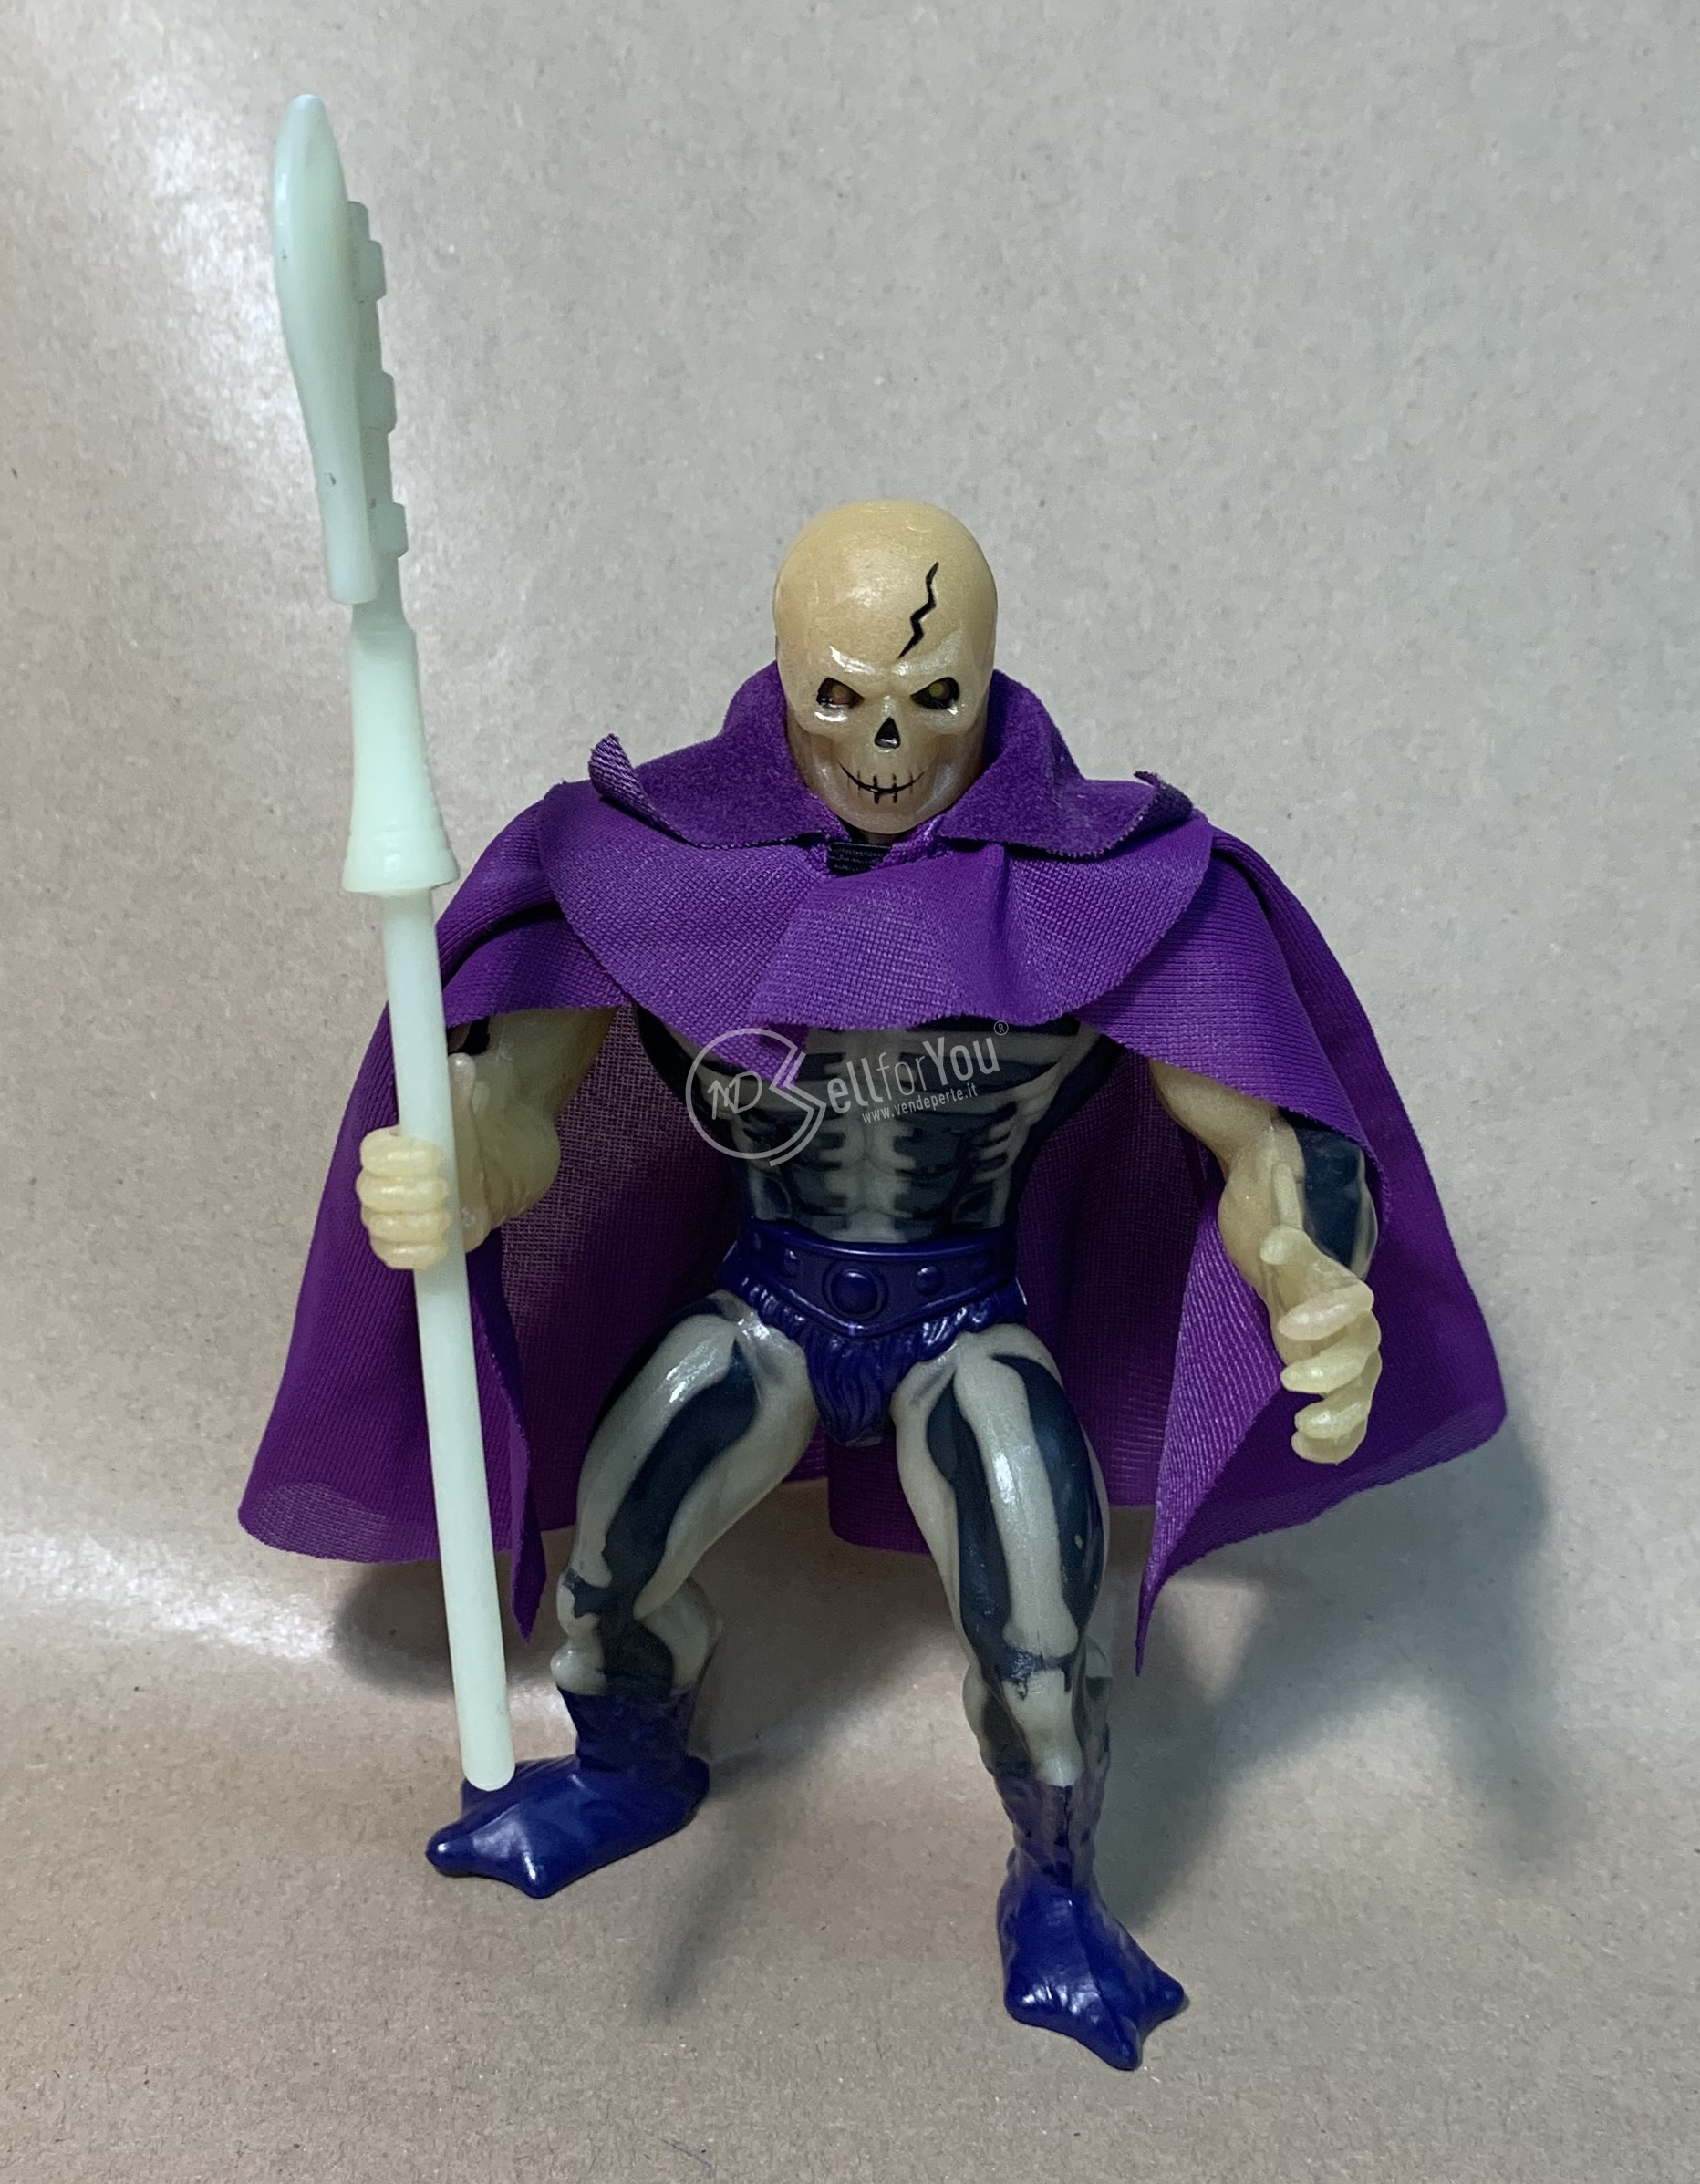 Masters of the Universe Scare Glow anni '80 Mattel 5 sellforyou